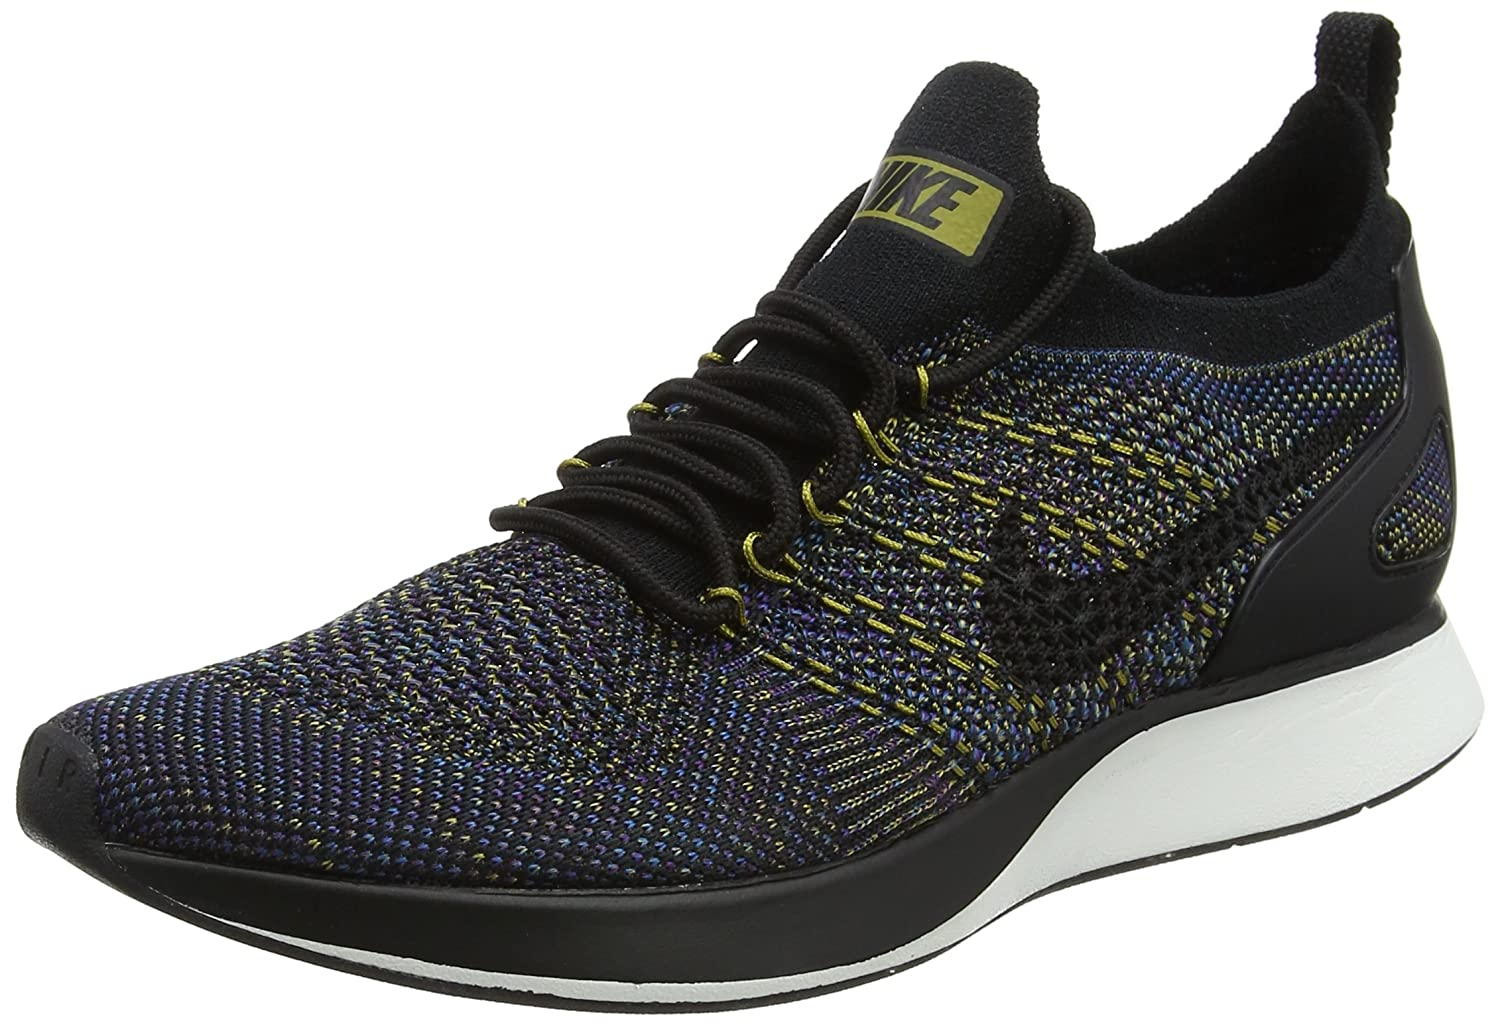 NIKE Womens Air Zoom Mariah Flyknit Racer Running Trainers 7 Aa0521 Sneakers Shoes B0761V88ZS 7 Trainers B(M) US|Black / Summit White cad8e7